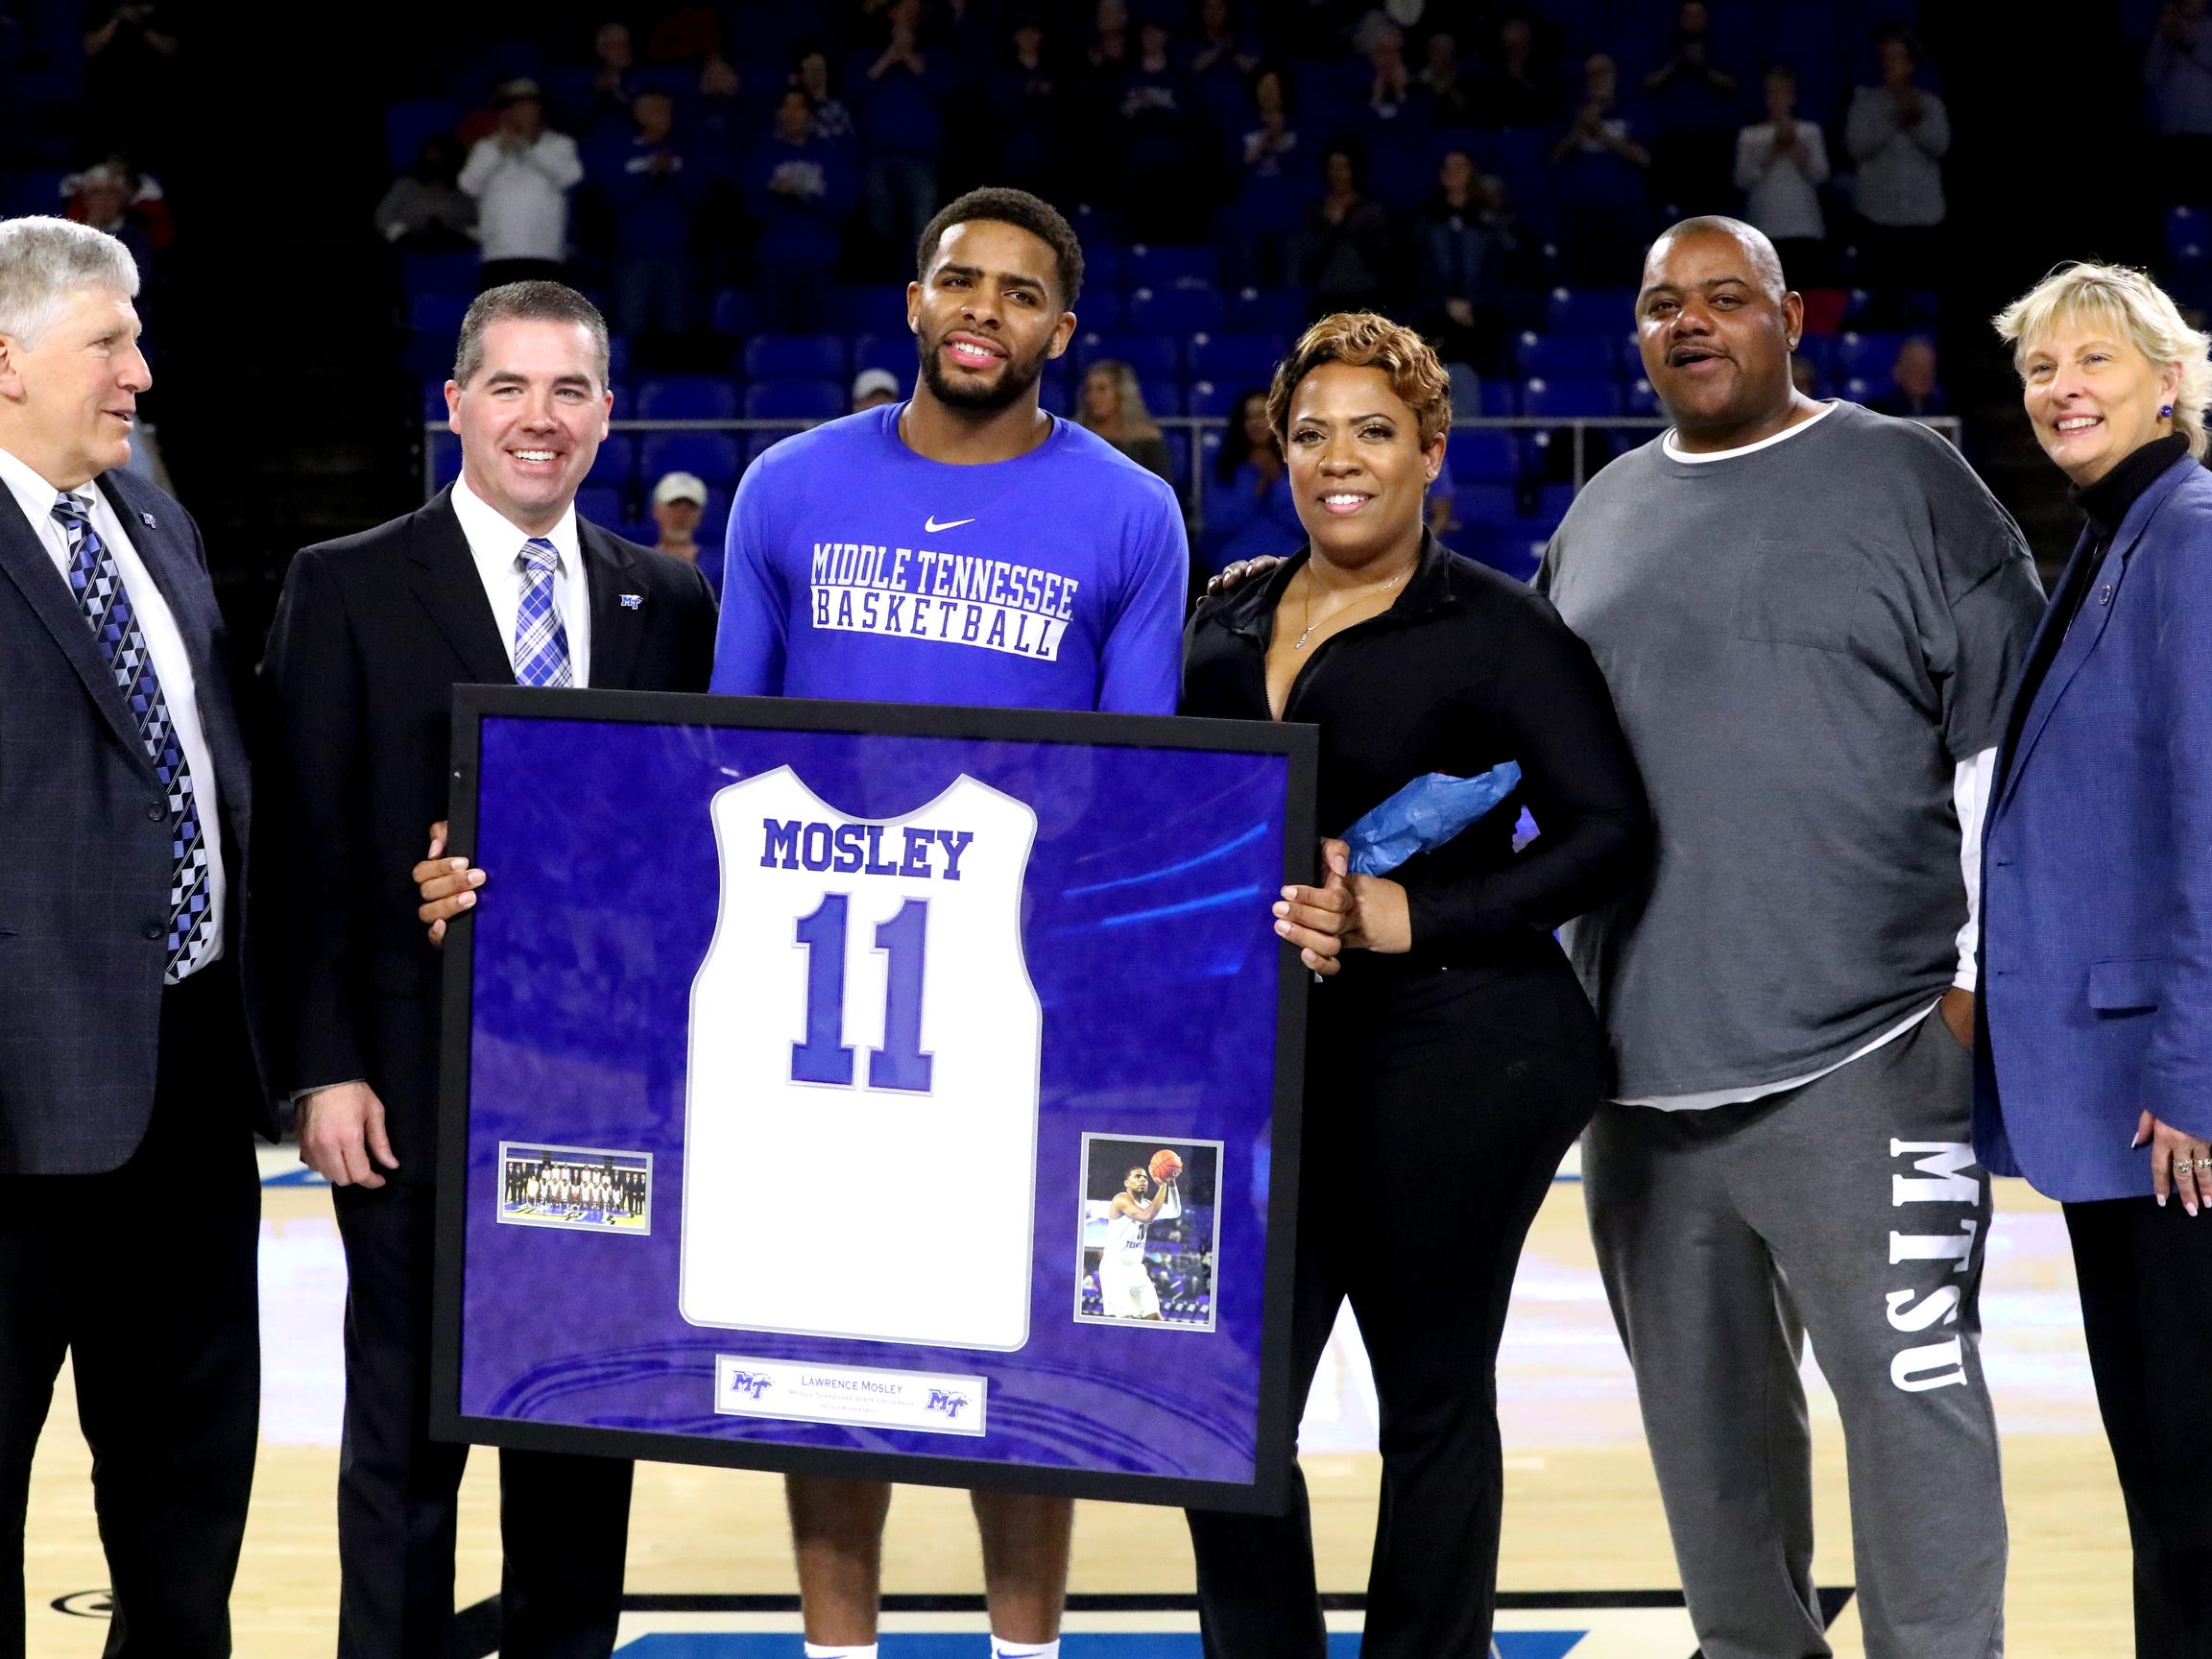 MTSU senior guard Lawrence Mosley (11) was honored on senior night before the game against UTEP on Saturday, March 9, 2019, at Murphy Center in Murfreesboro, Tenn.